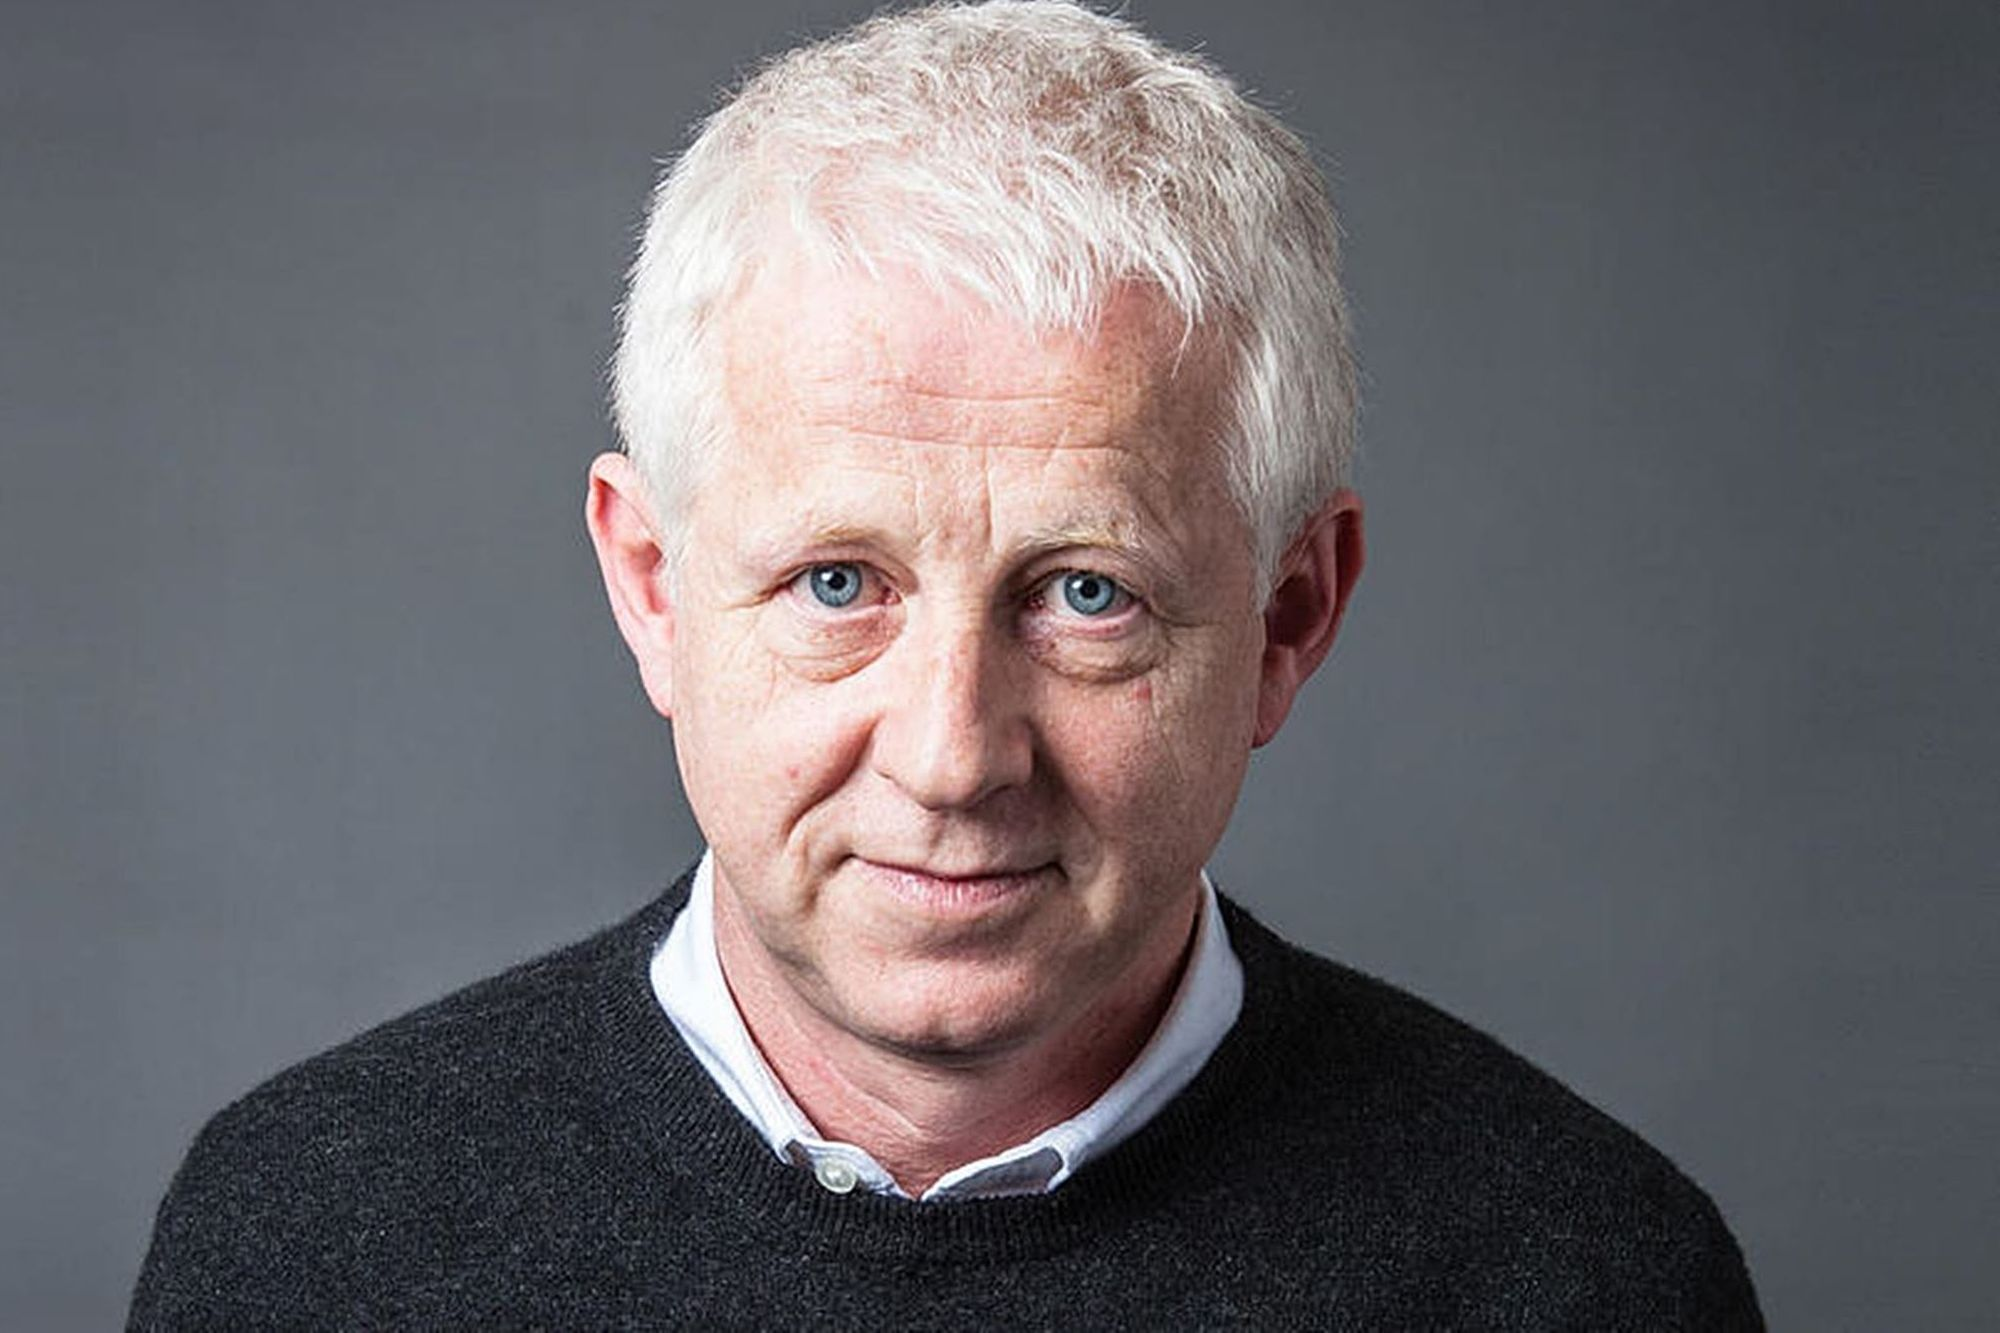 'Love Actually' Director Richard Curtis: 'To Make Things Happen, You Have to Make Things'